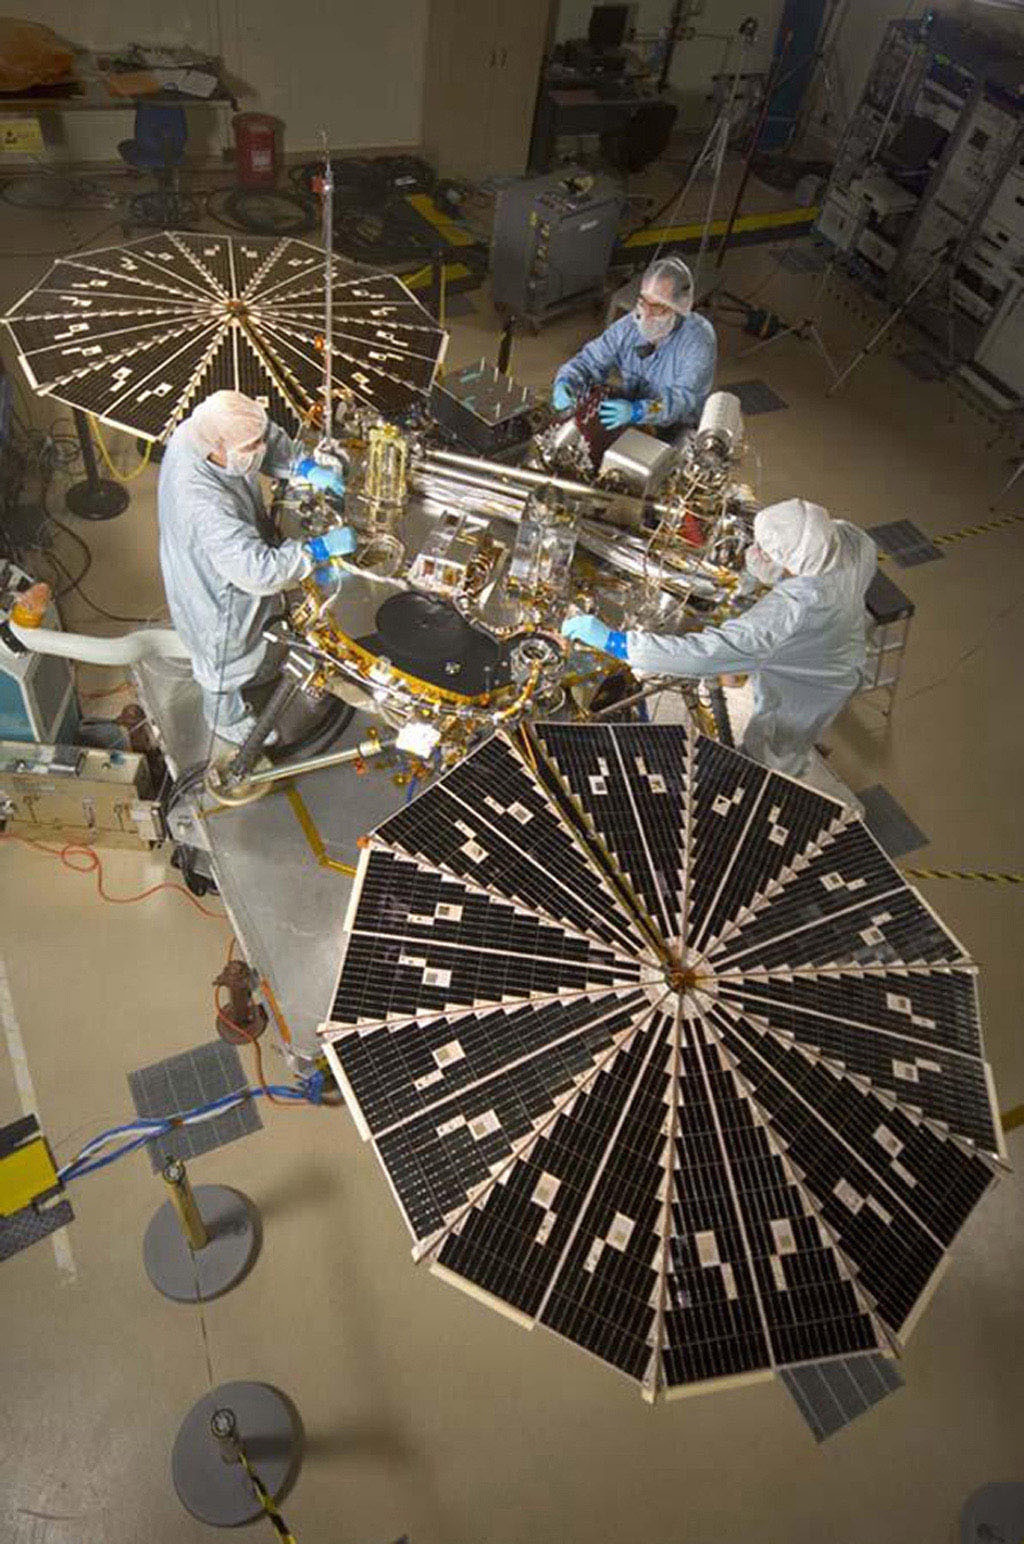 NASA's next Mars-bound spacecraft, the Phoenix Mars Lander, partway through assembly and testing at Lockheed Martin Space Systems, Denver, in September 2006.